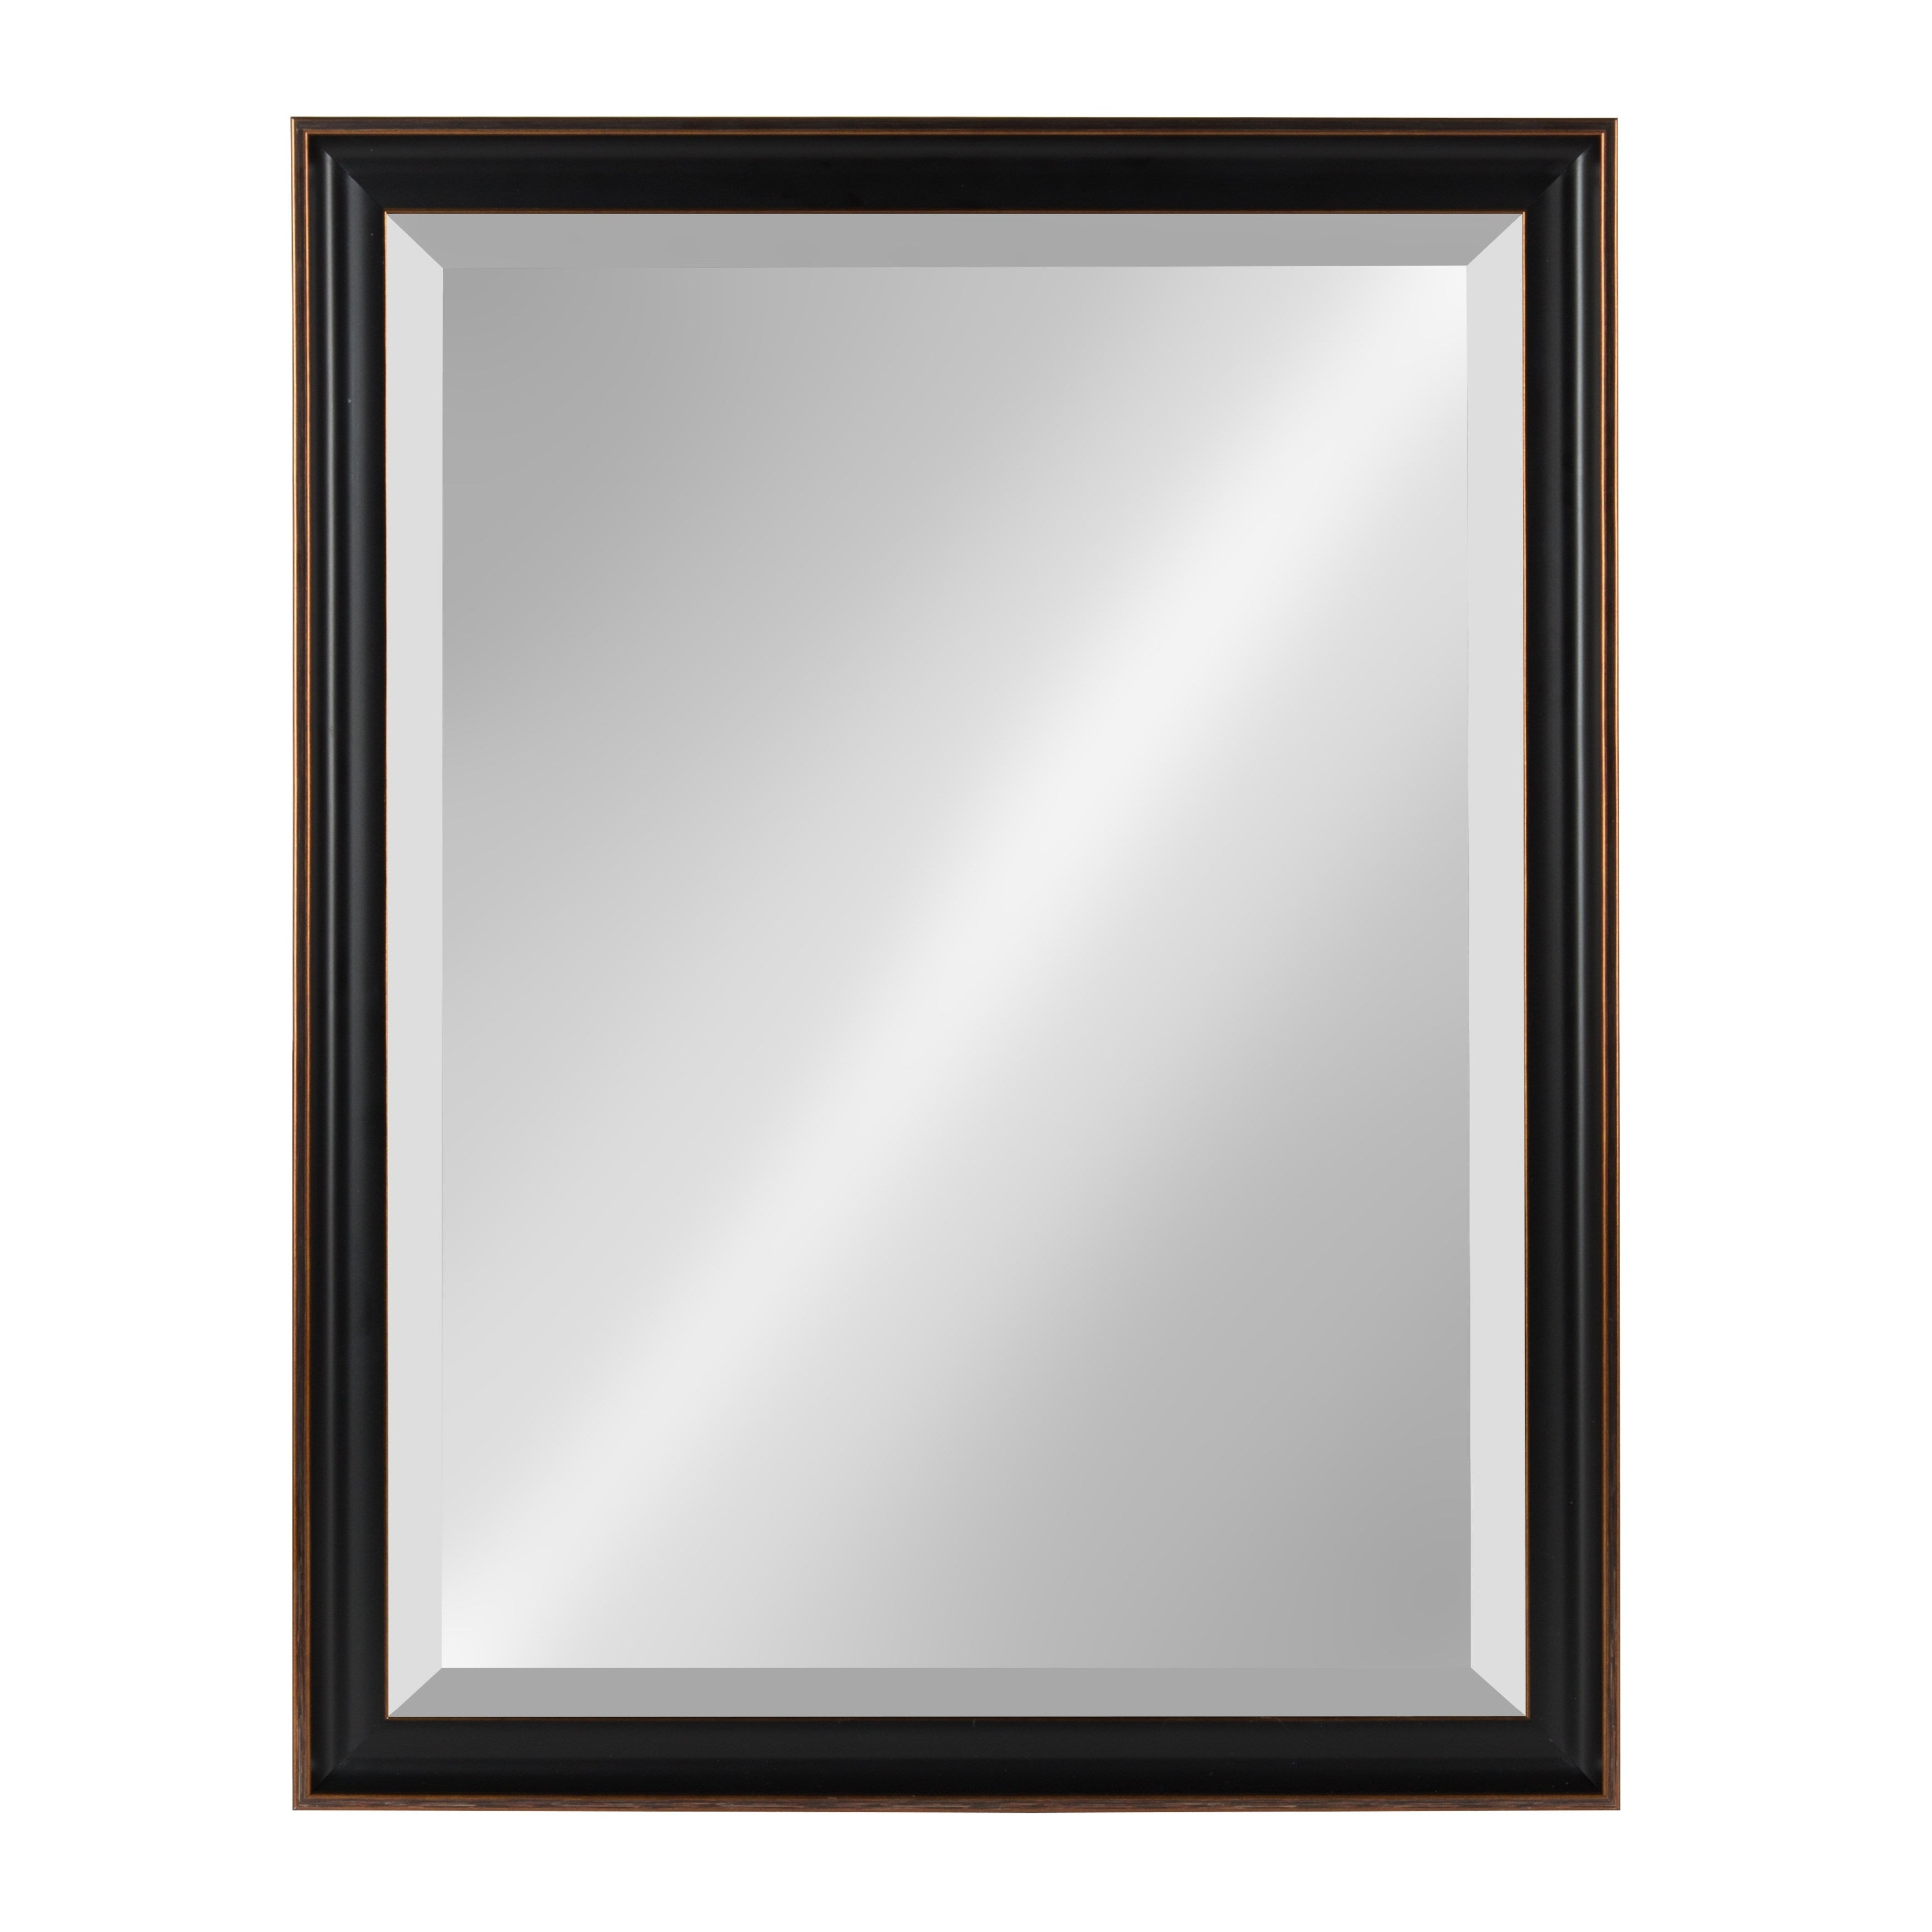 Kate And Laurel Havana Framed Beveled Wall Mirror – Antique Bronze In Rectangle Plastic Beveled Wall Mirrors (View 6 of 20)